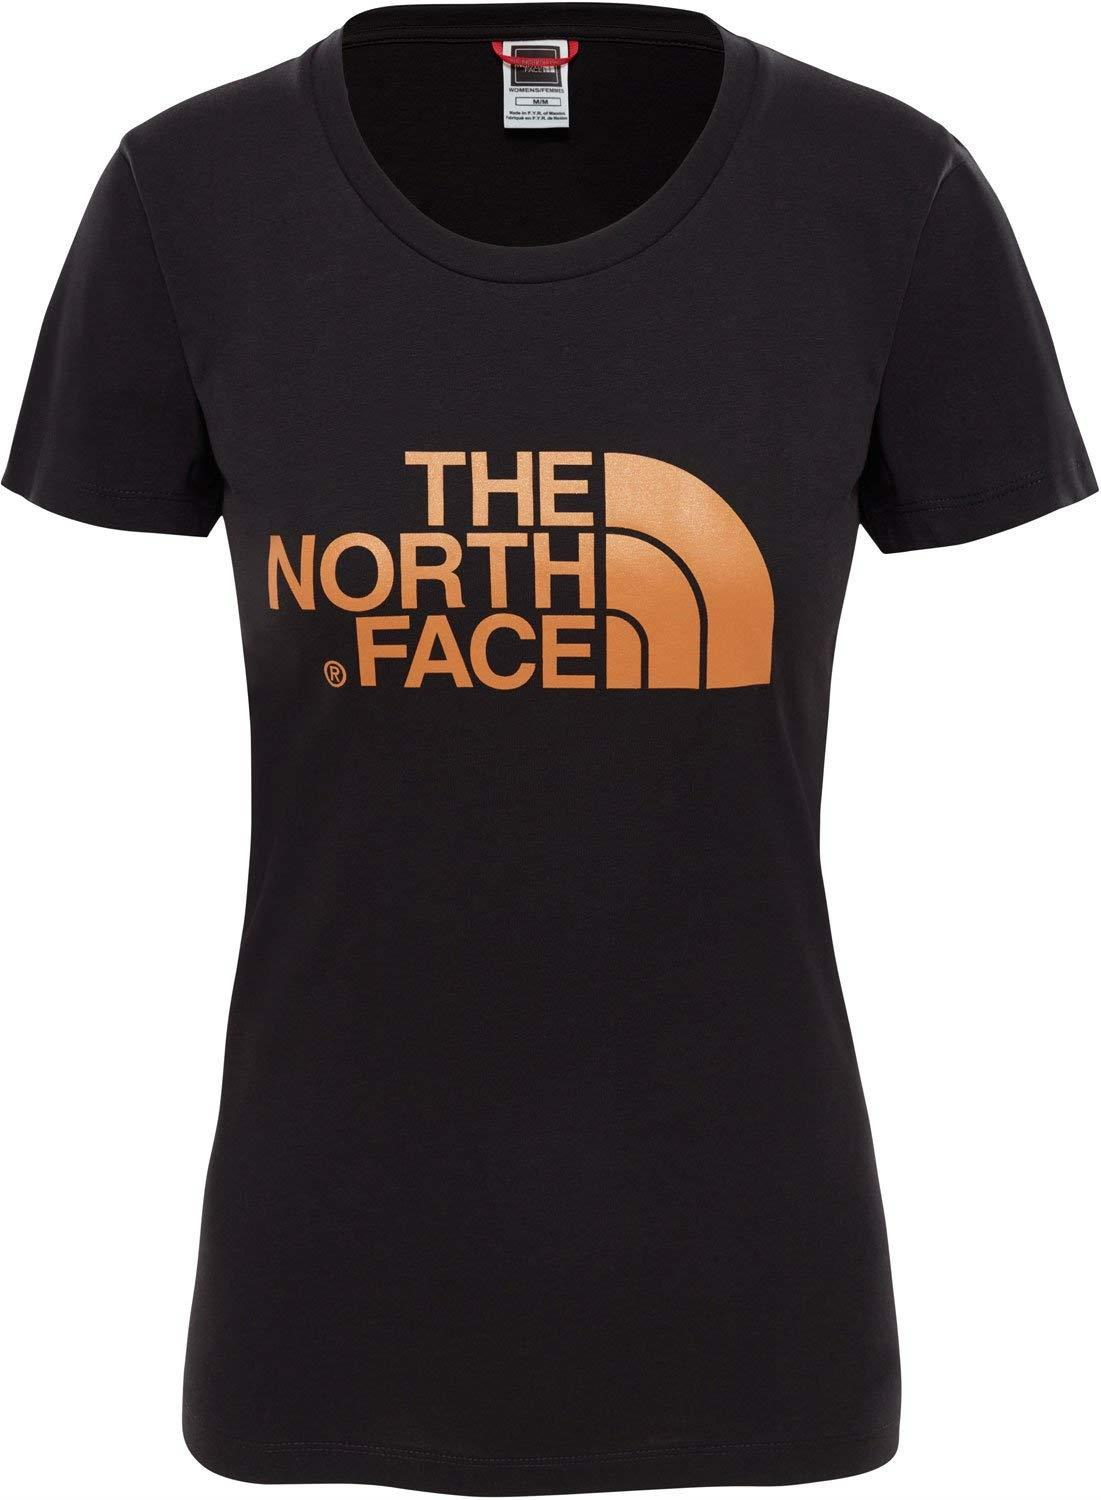 The North Face Kadın S/S Easy Tee T-Shirt